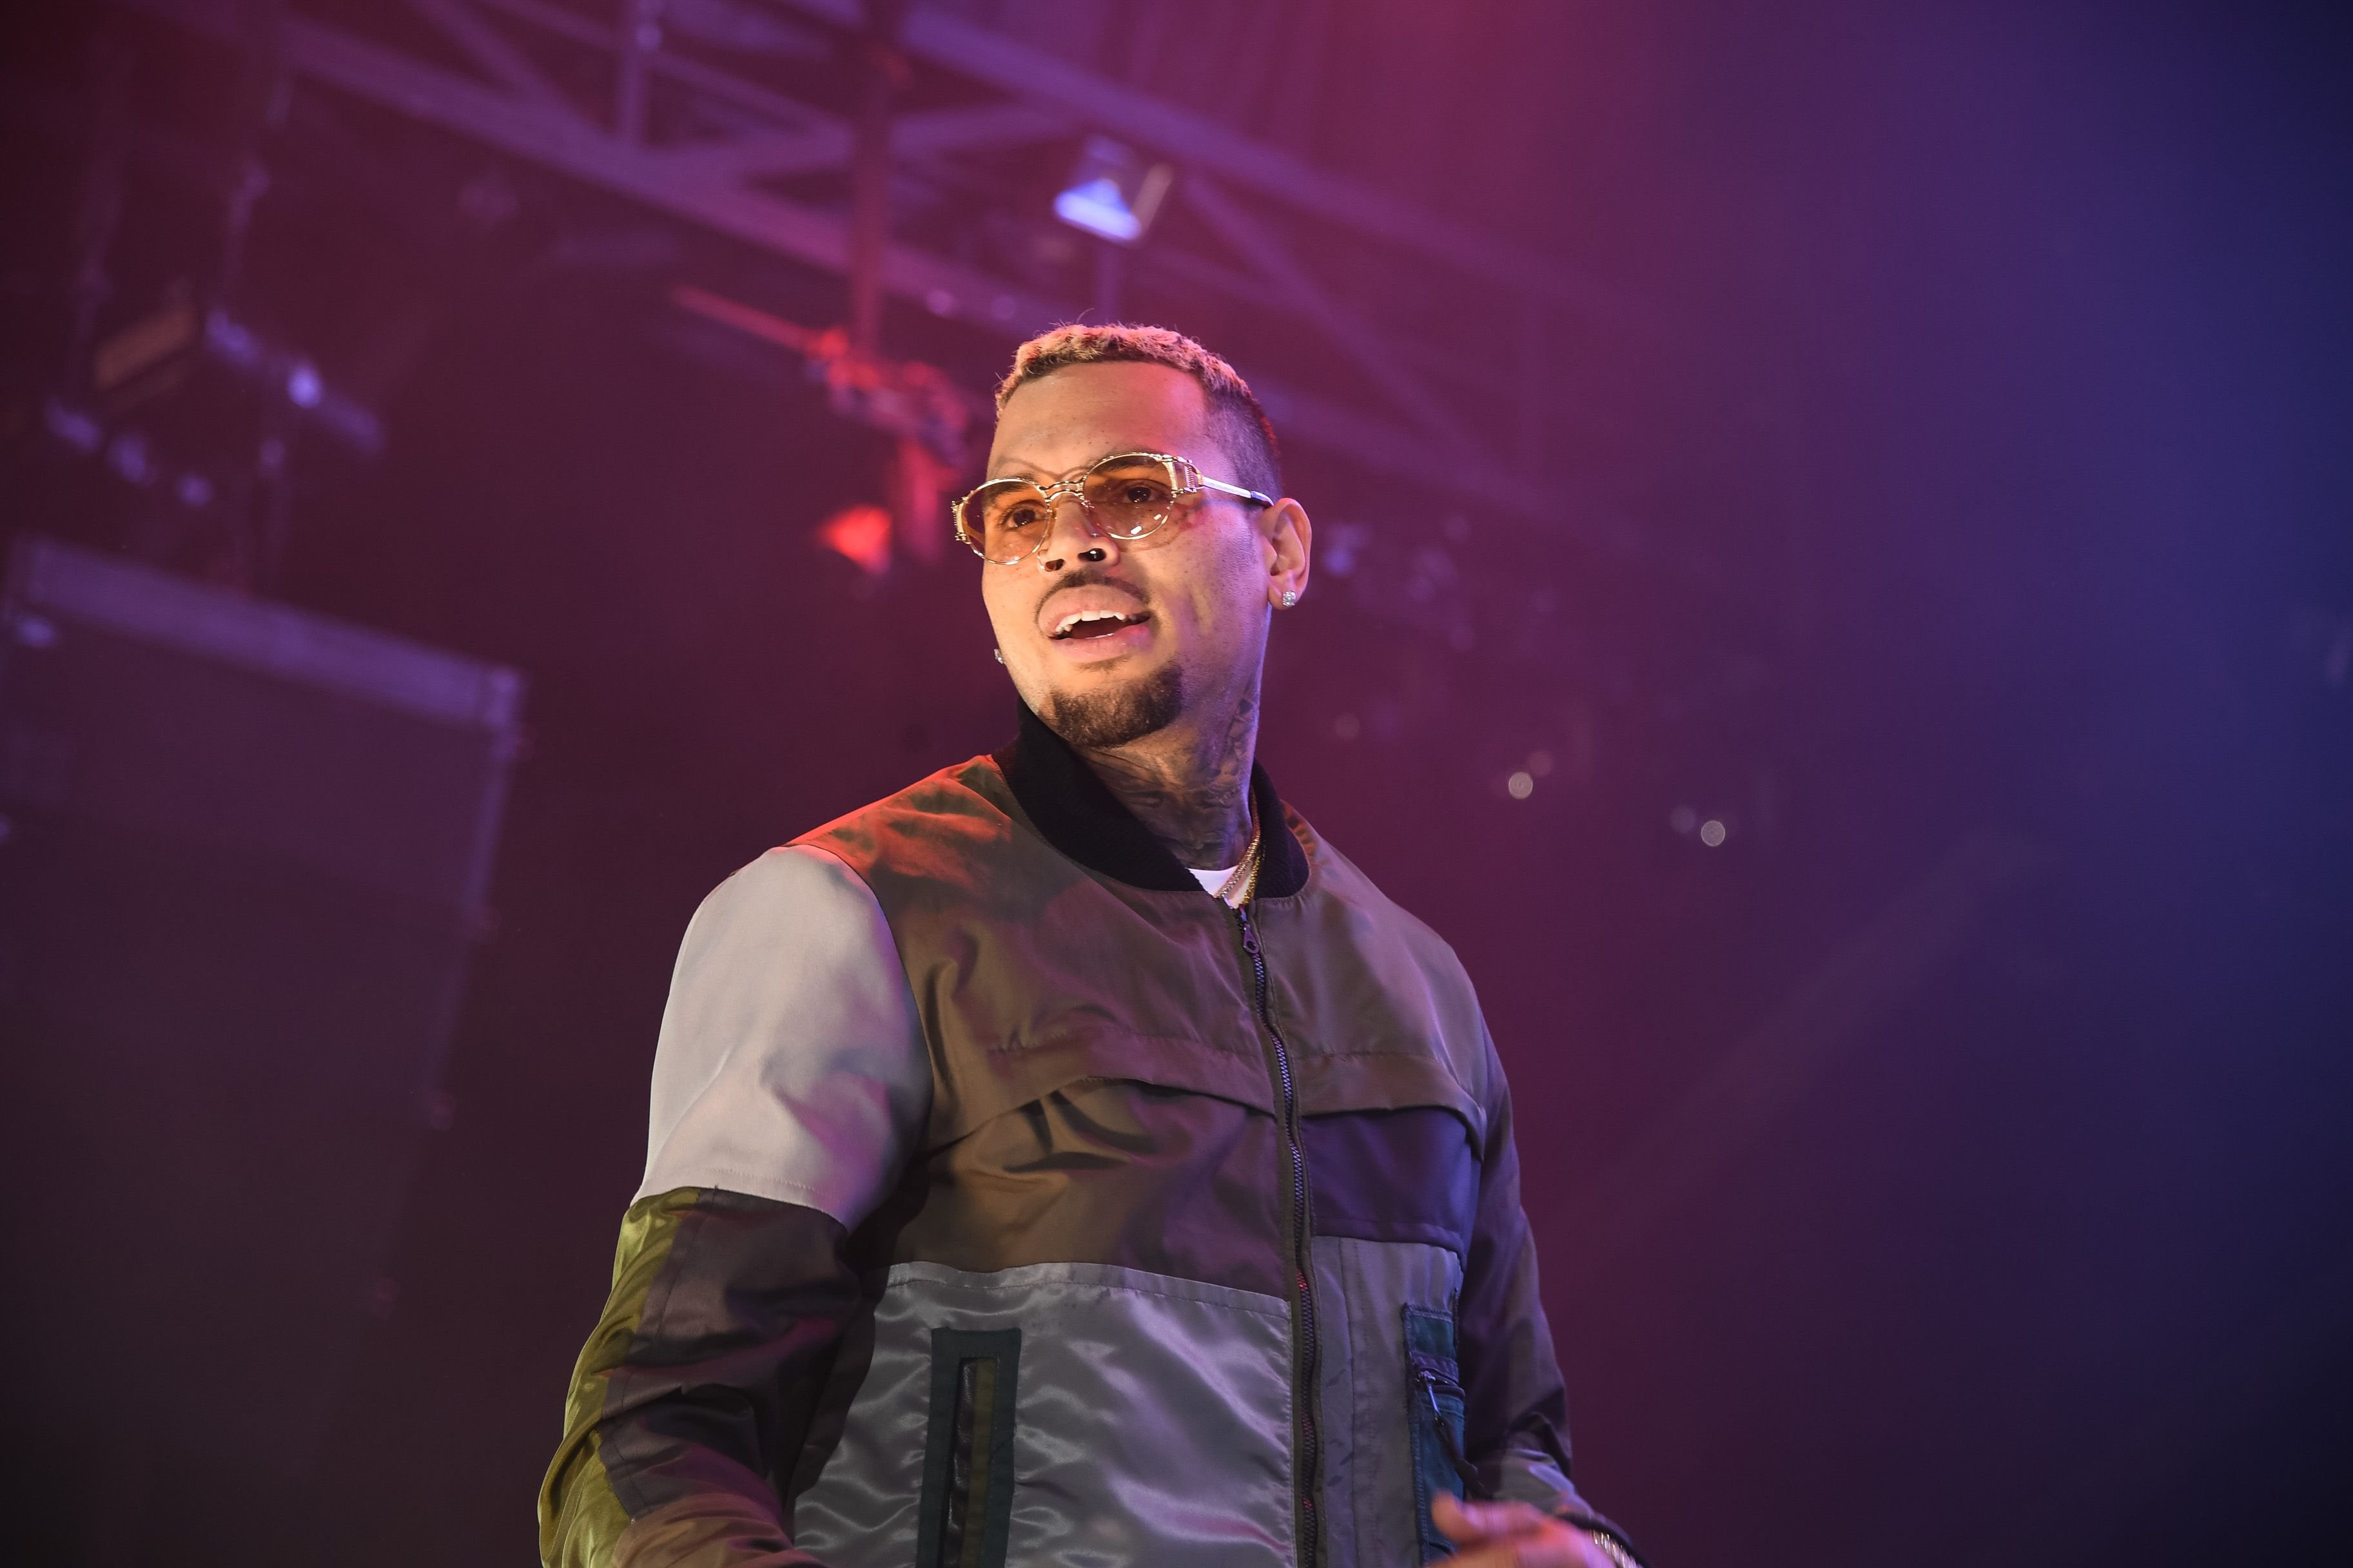 Chris Brown performs at the HOT 97 Summer Jam in June 2017 | Photo: Getty Images